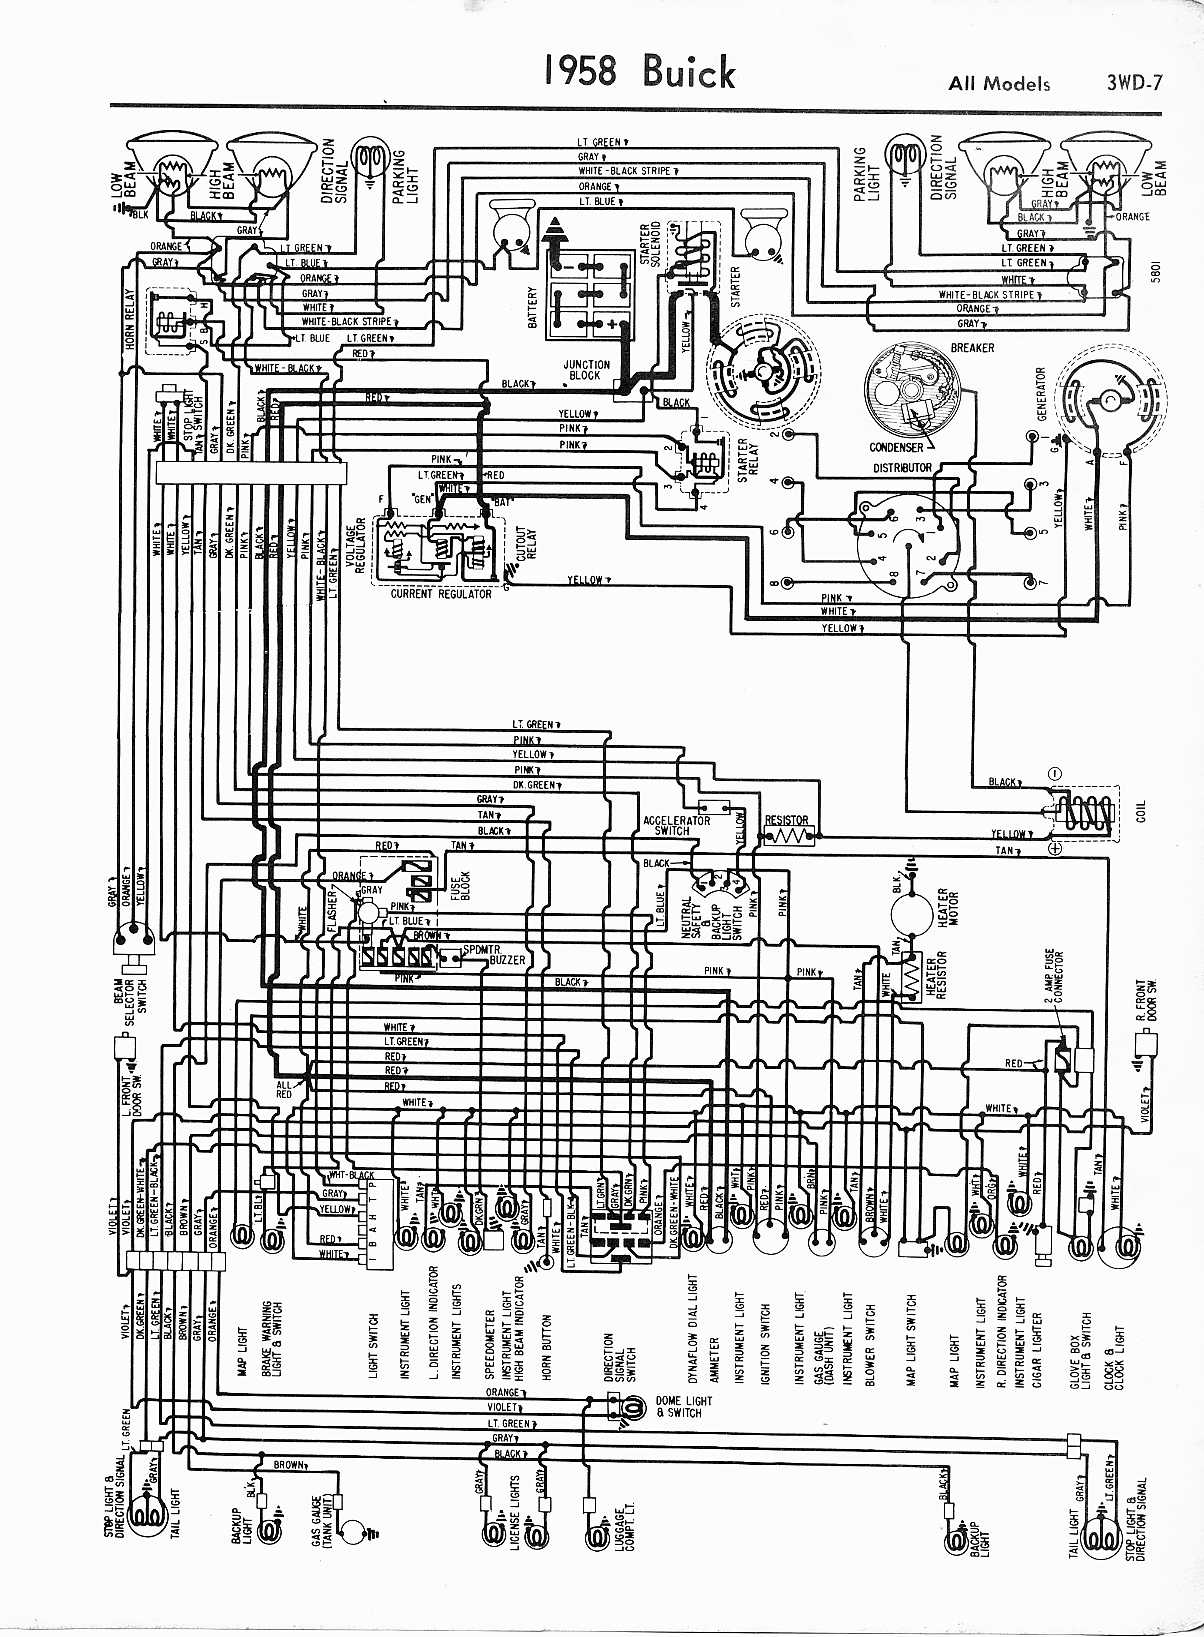 1957 buick special wiring diagram 1957 wiring diagrams online 1958 all models buick wiring diagrams